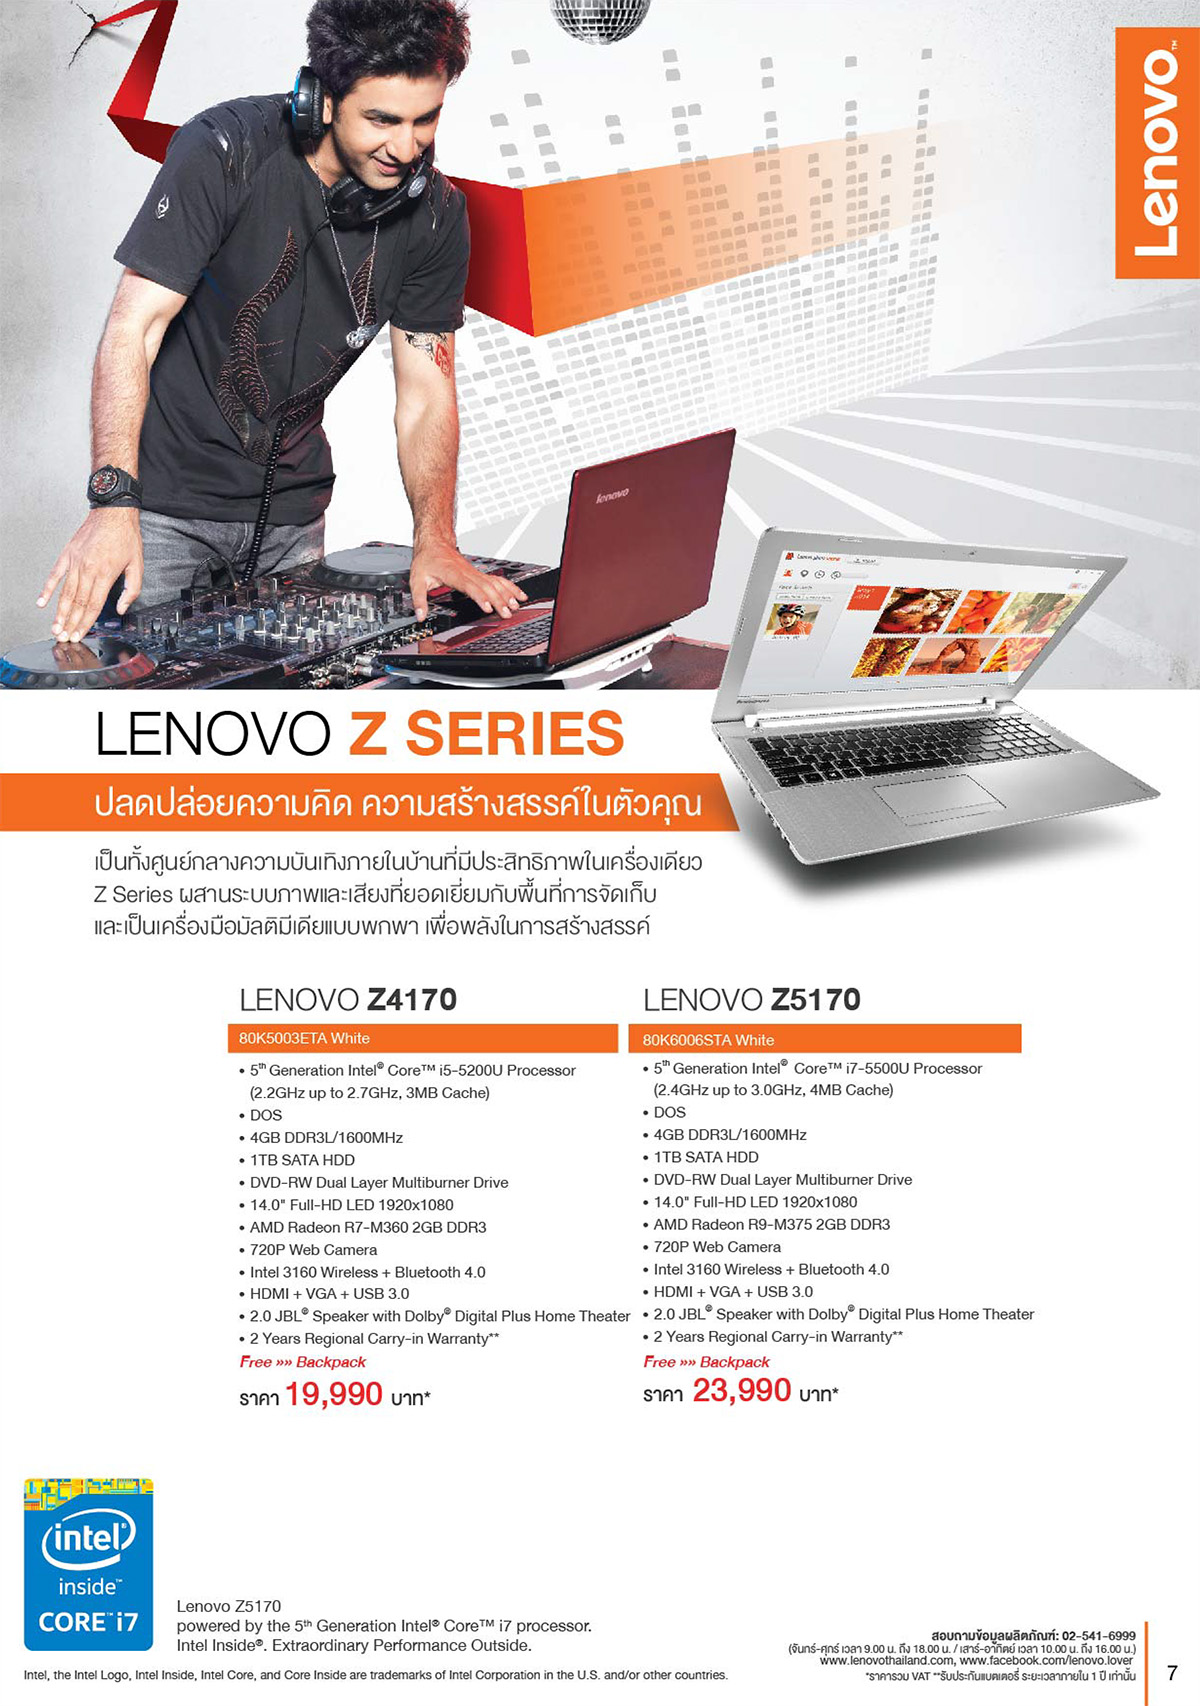 Lenovo Consumer Product Catalog Q2FY15_Final AW-7